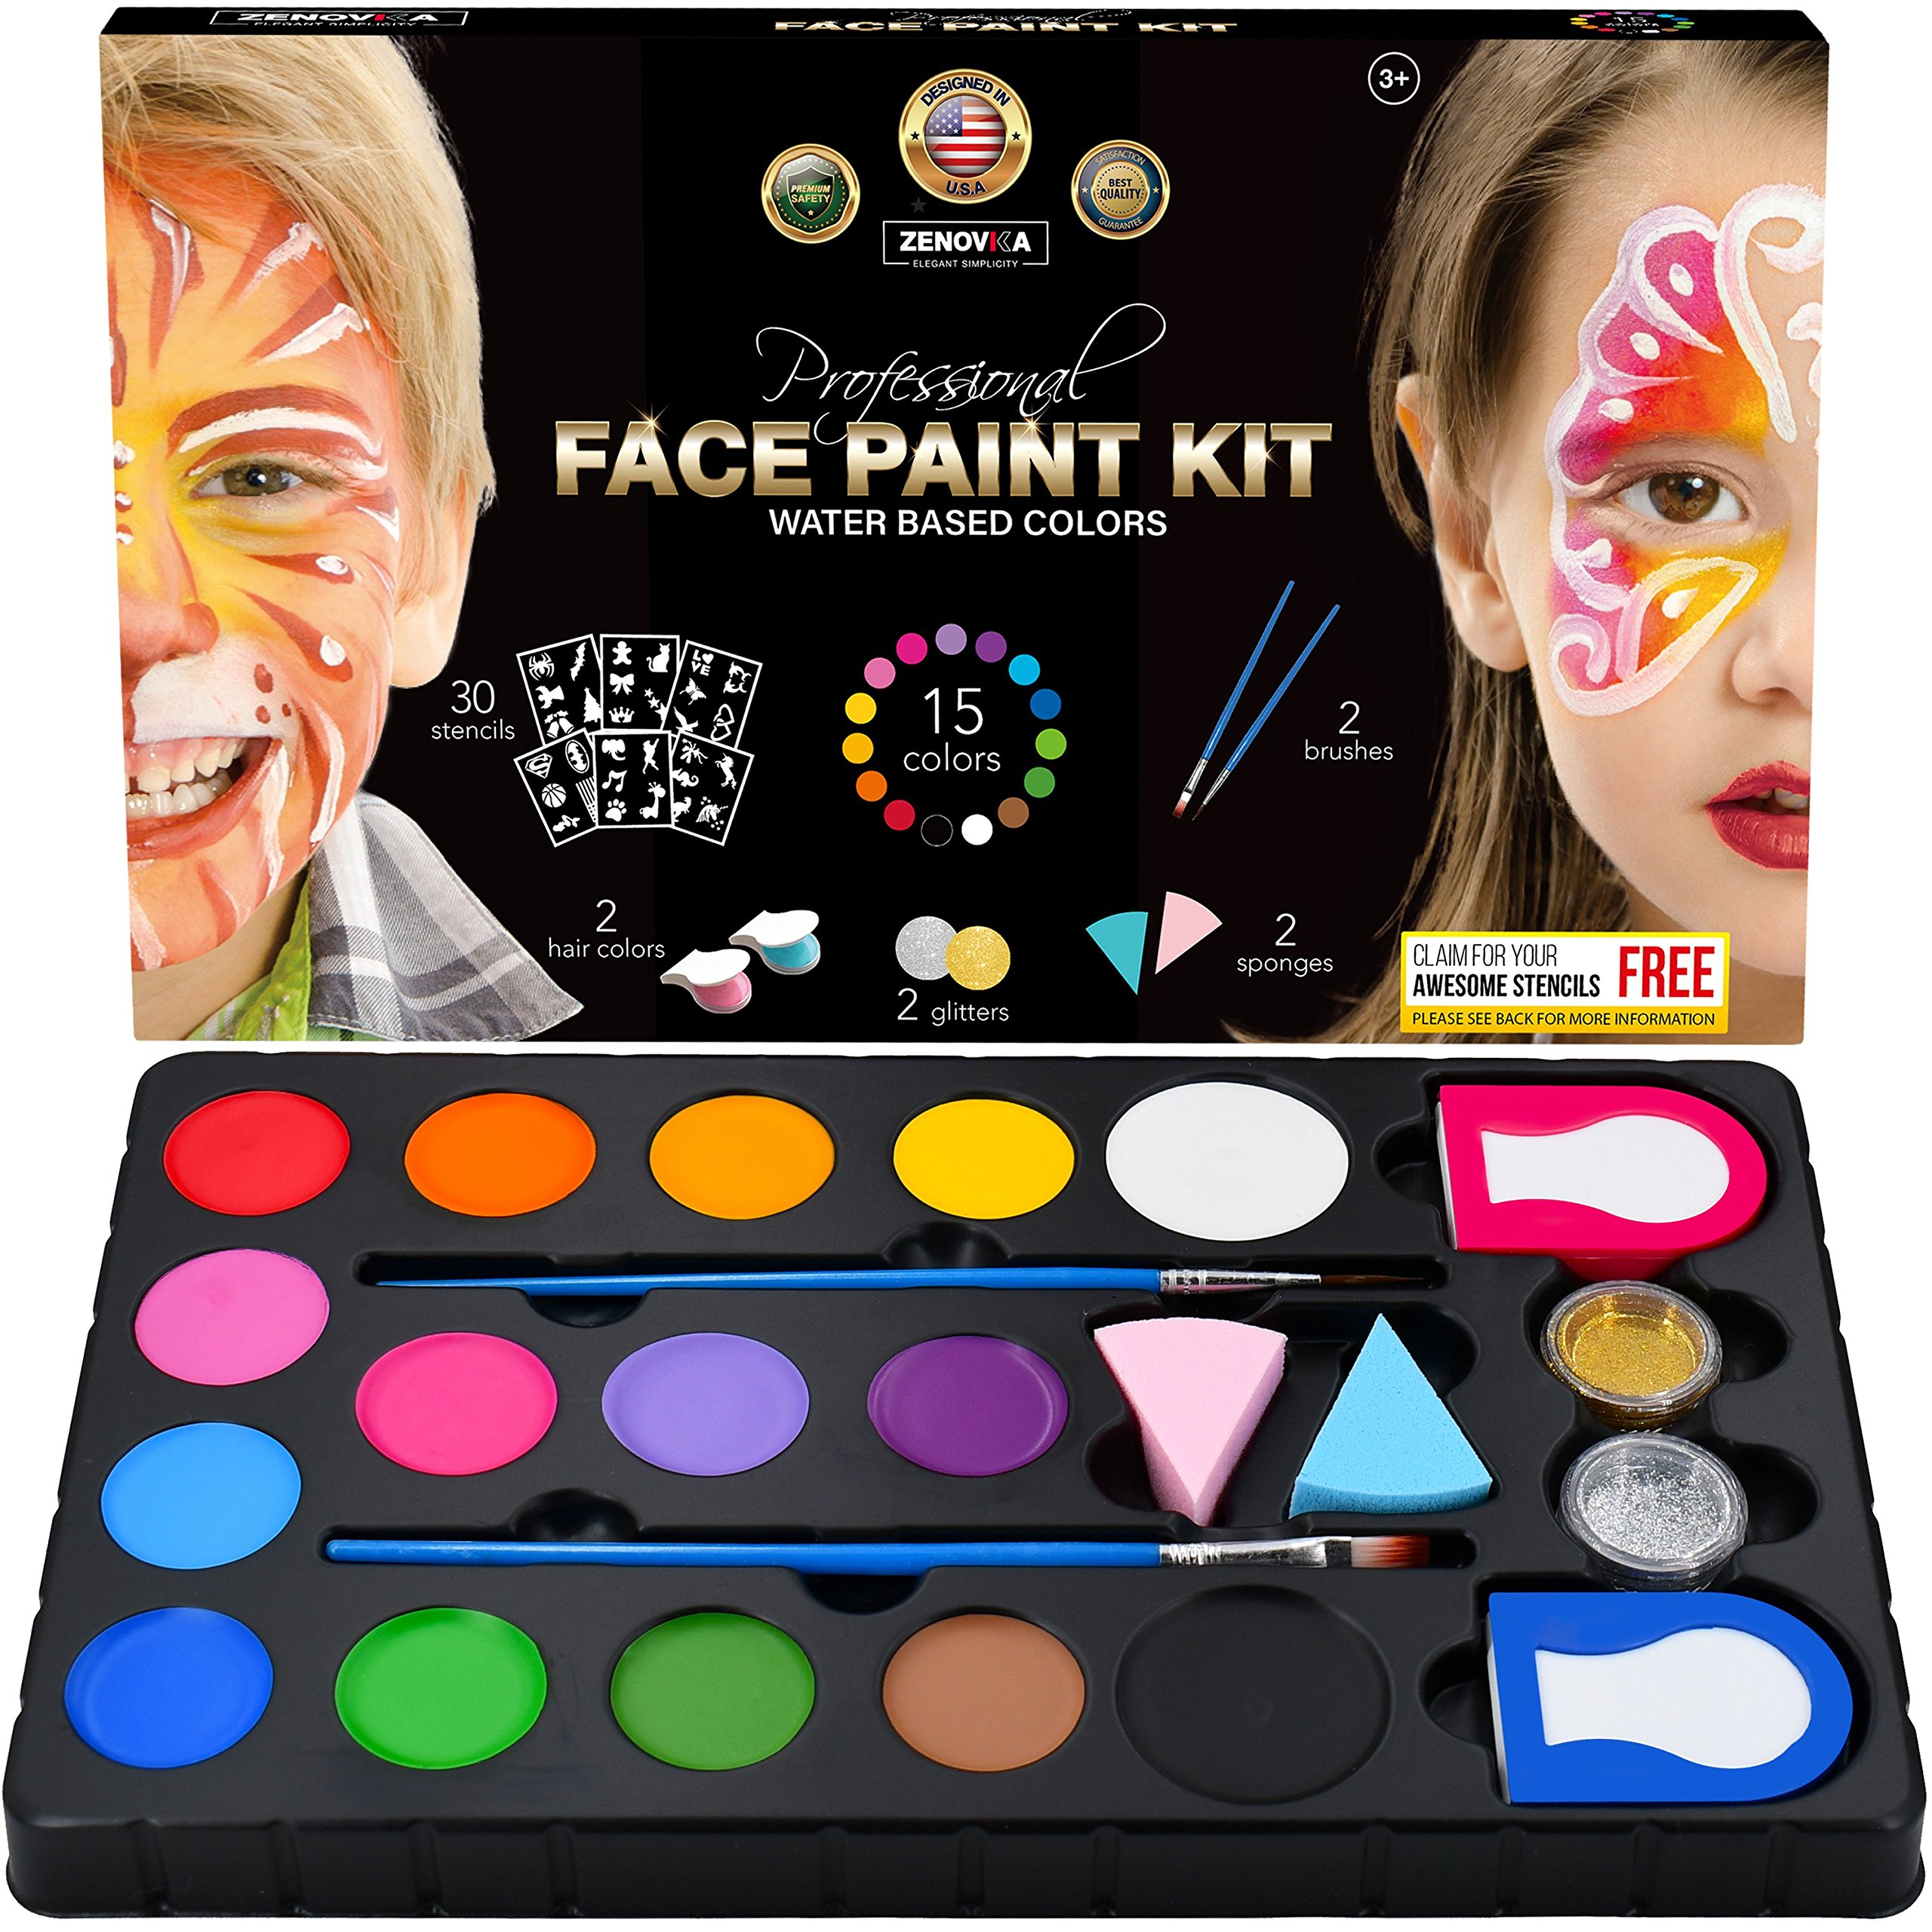 Professional Face Paint Kit for Kids - 15 Vibrant Body Paint Water Based Colors, 2 Glitters, 30 Stencils, 2 Haircolor, 2 Brushes, 2 Sponges - Great Face Paints with 15 Fun Face Painting Ideas Book